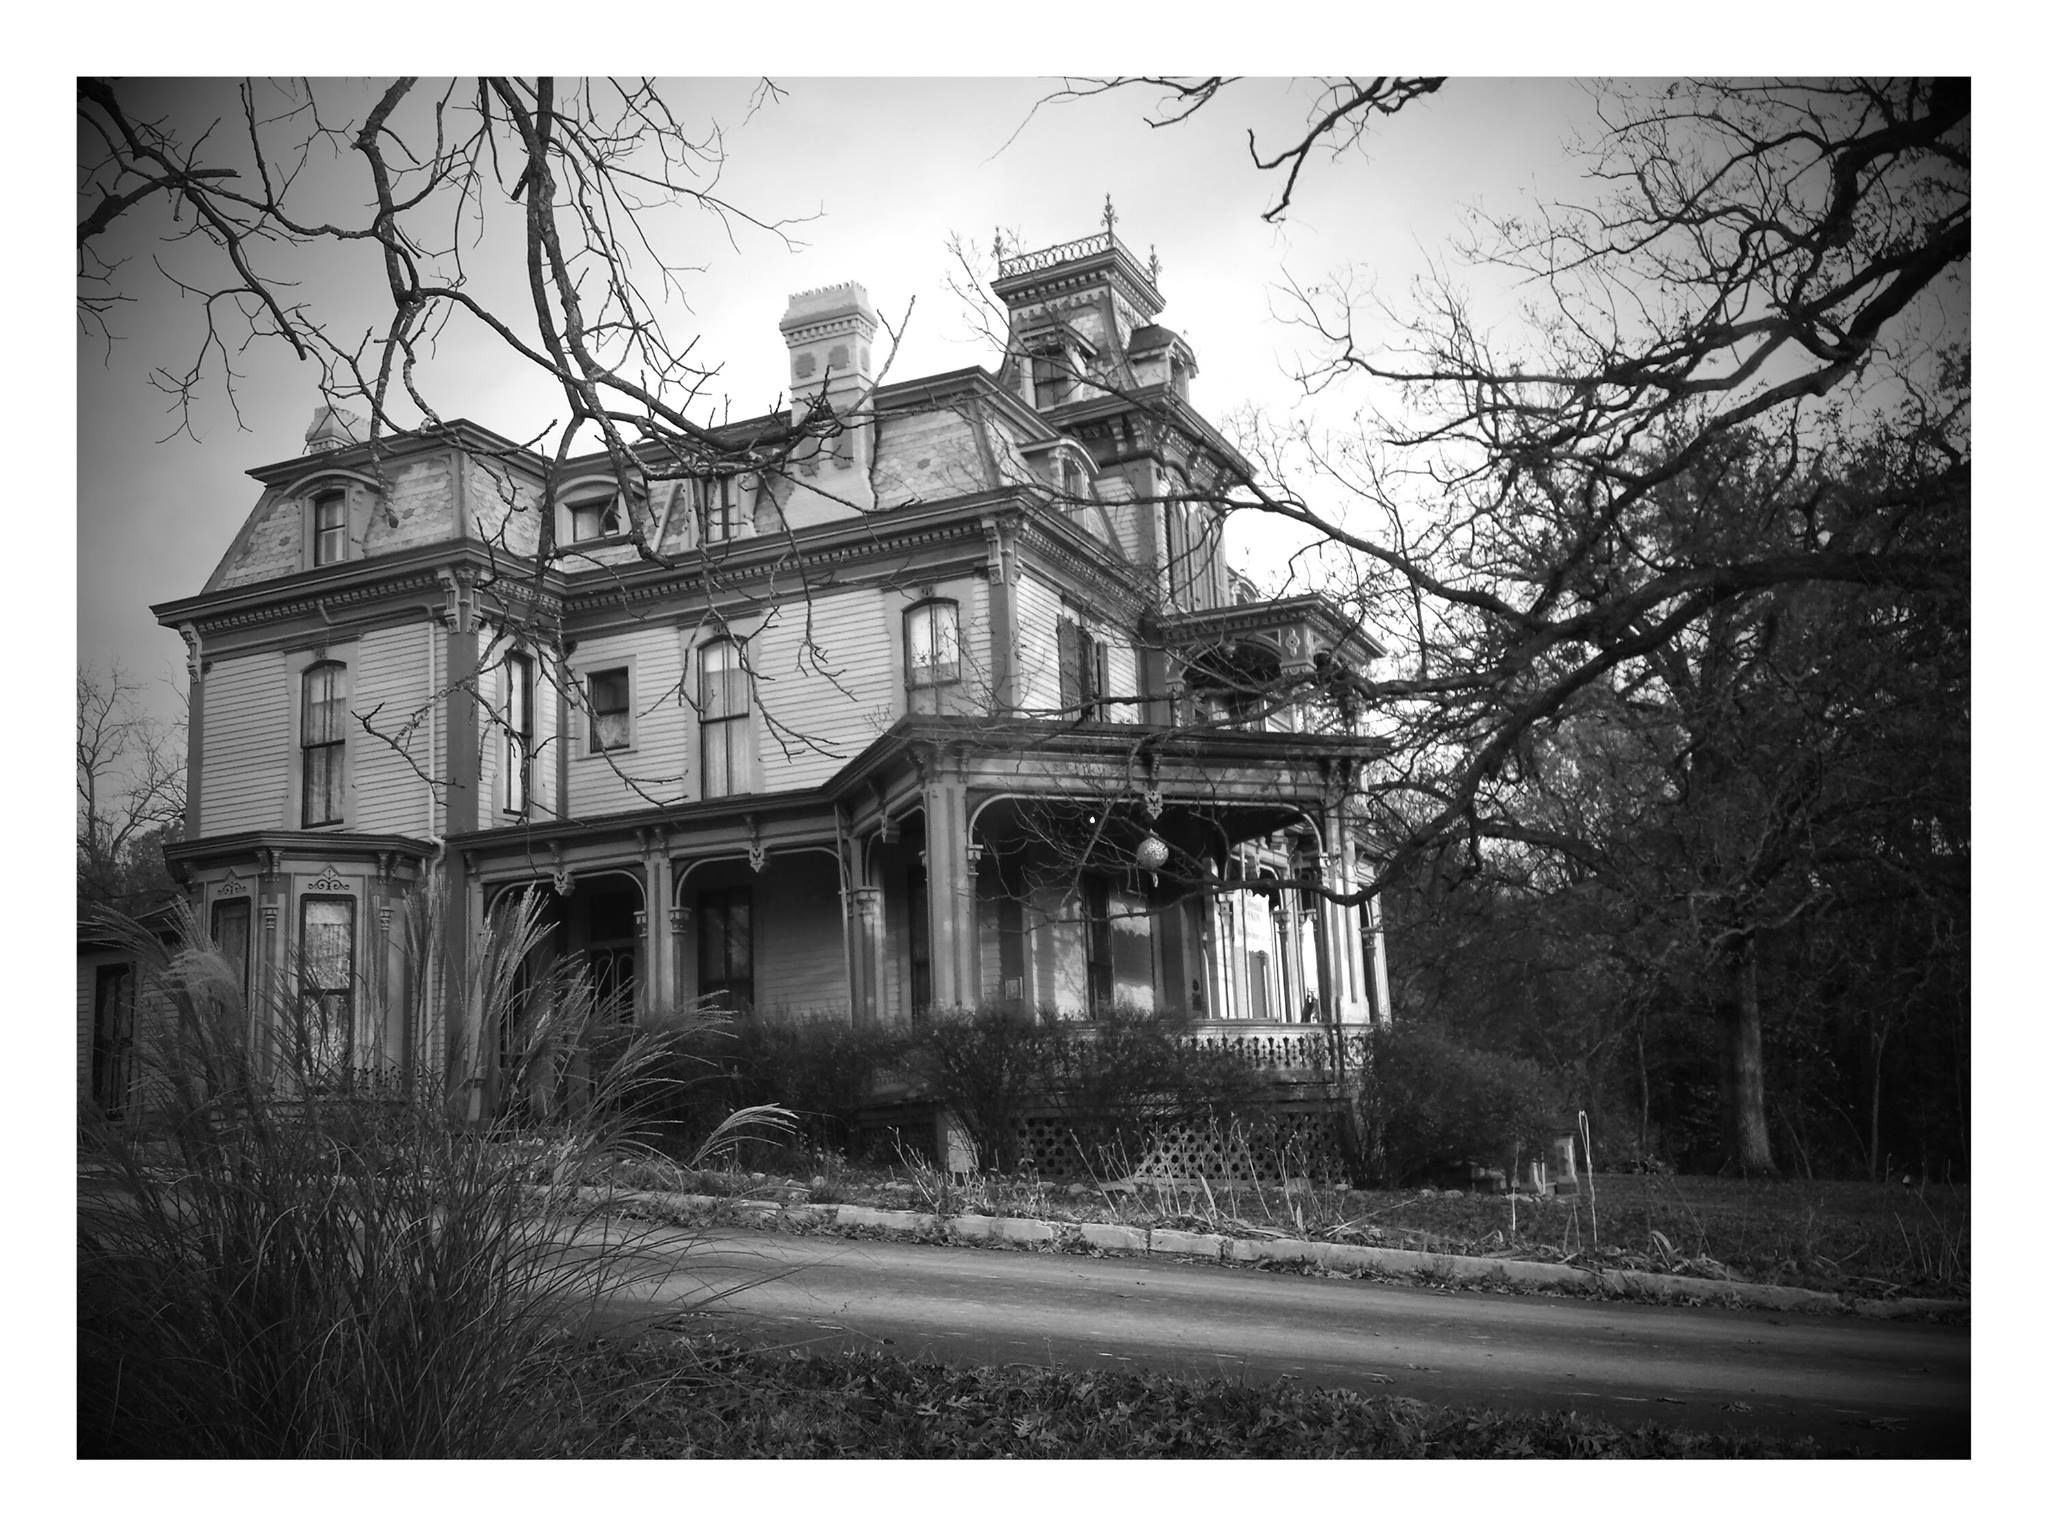 Garth Woodside Mansion. Black and White photo taken late